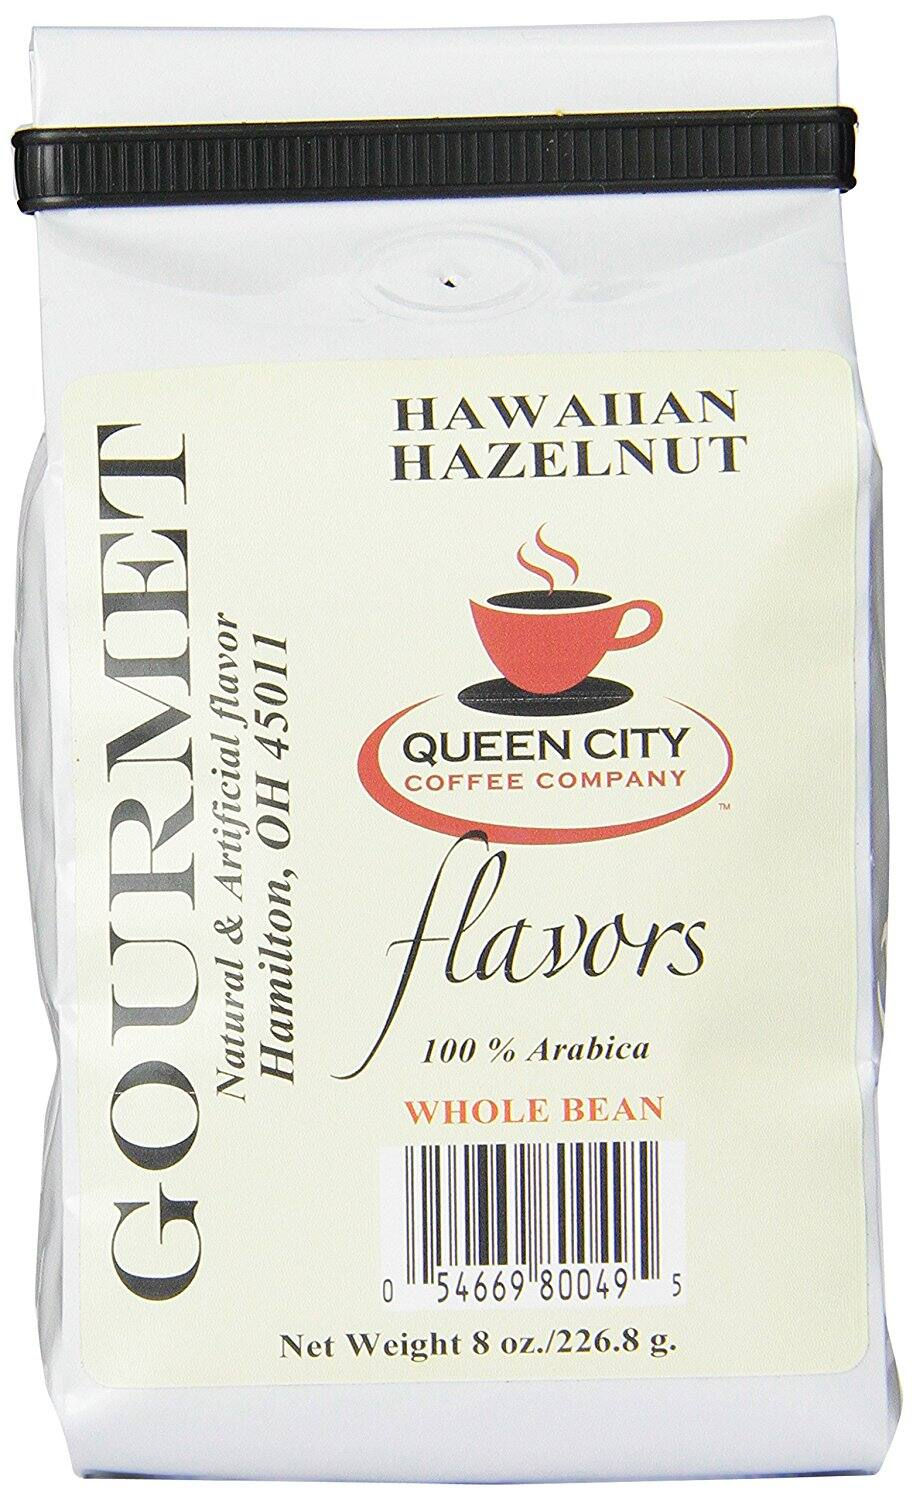 24-Ounce Queen City Hawaiian Hazelnut Whole Coffee Beans (3x 8oz bags) $7.86 w/ S&S + Free Shipping